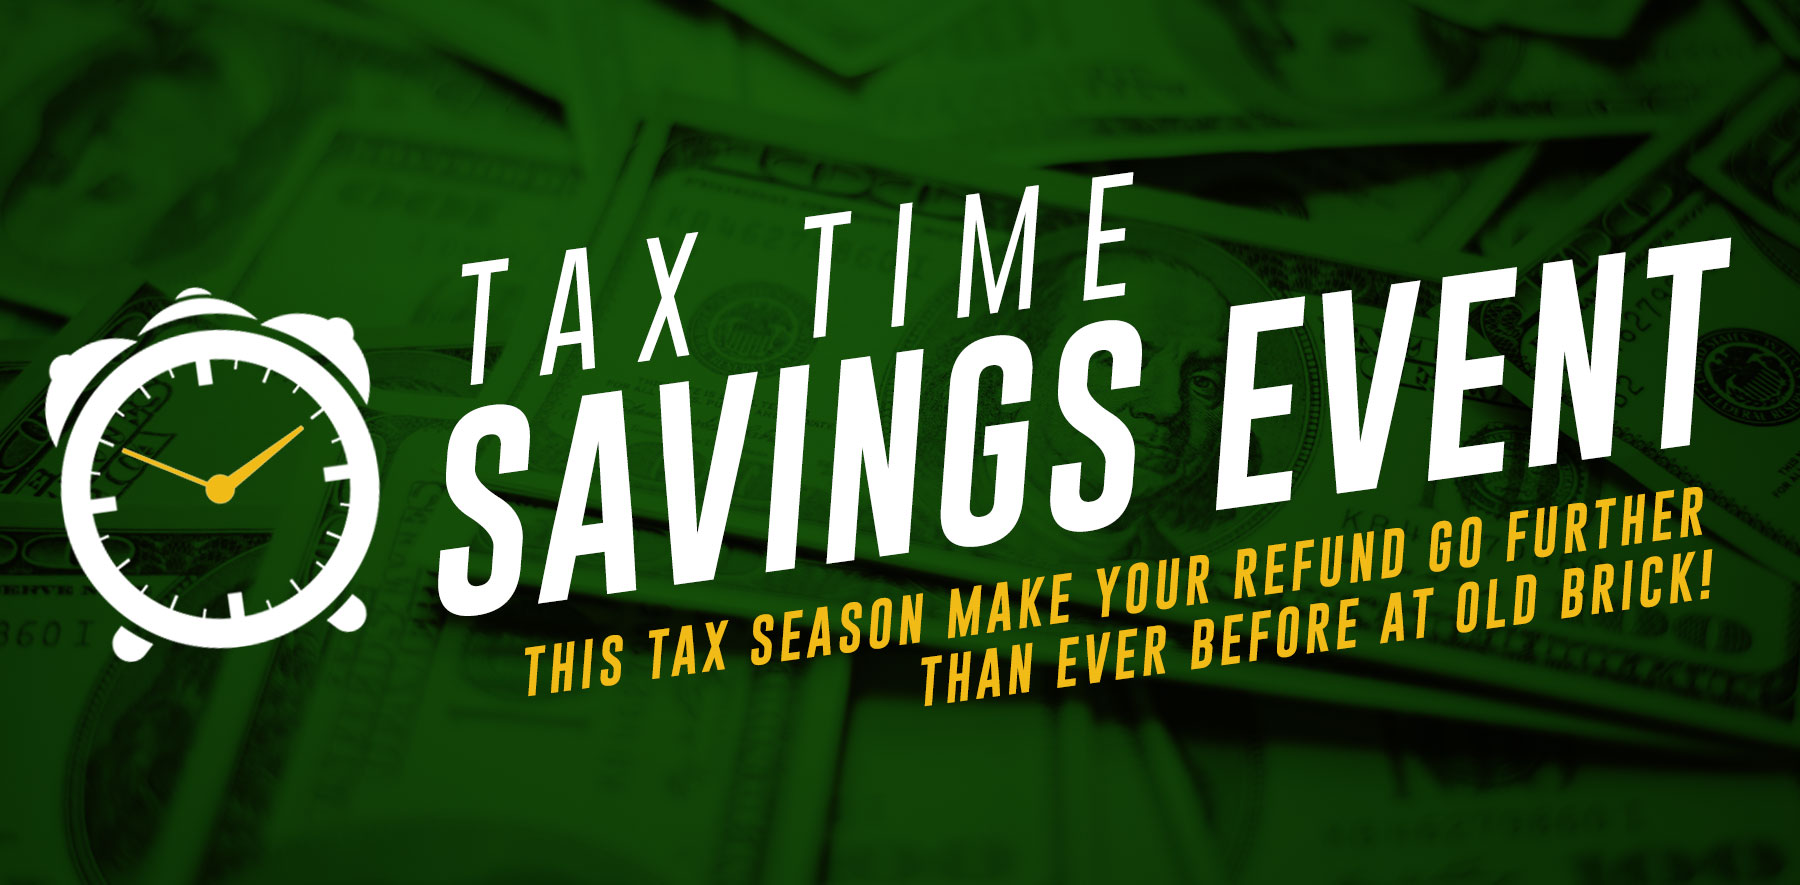 Tax Time Savings Event